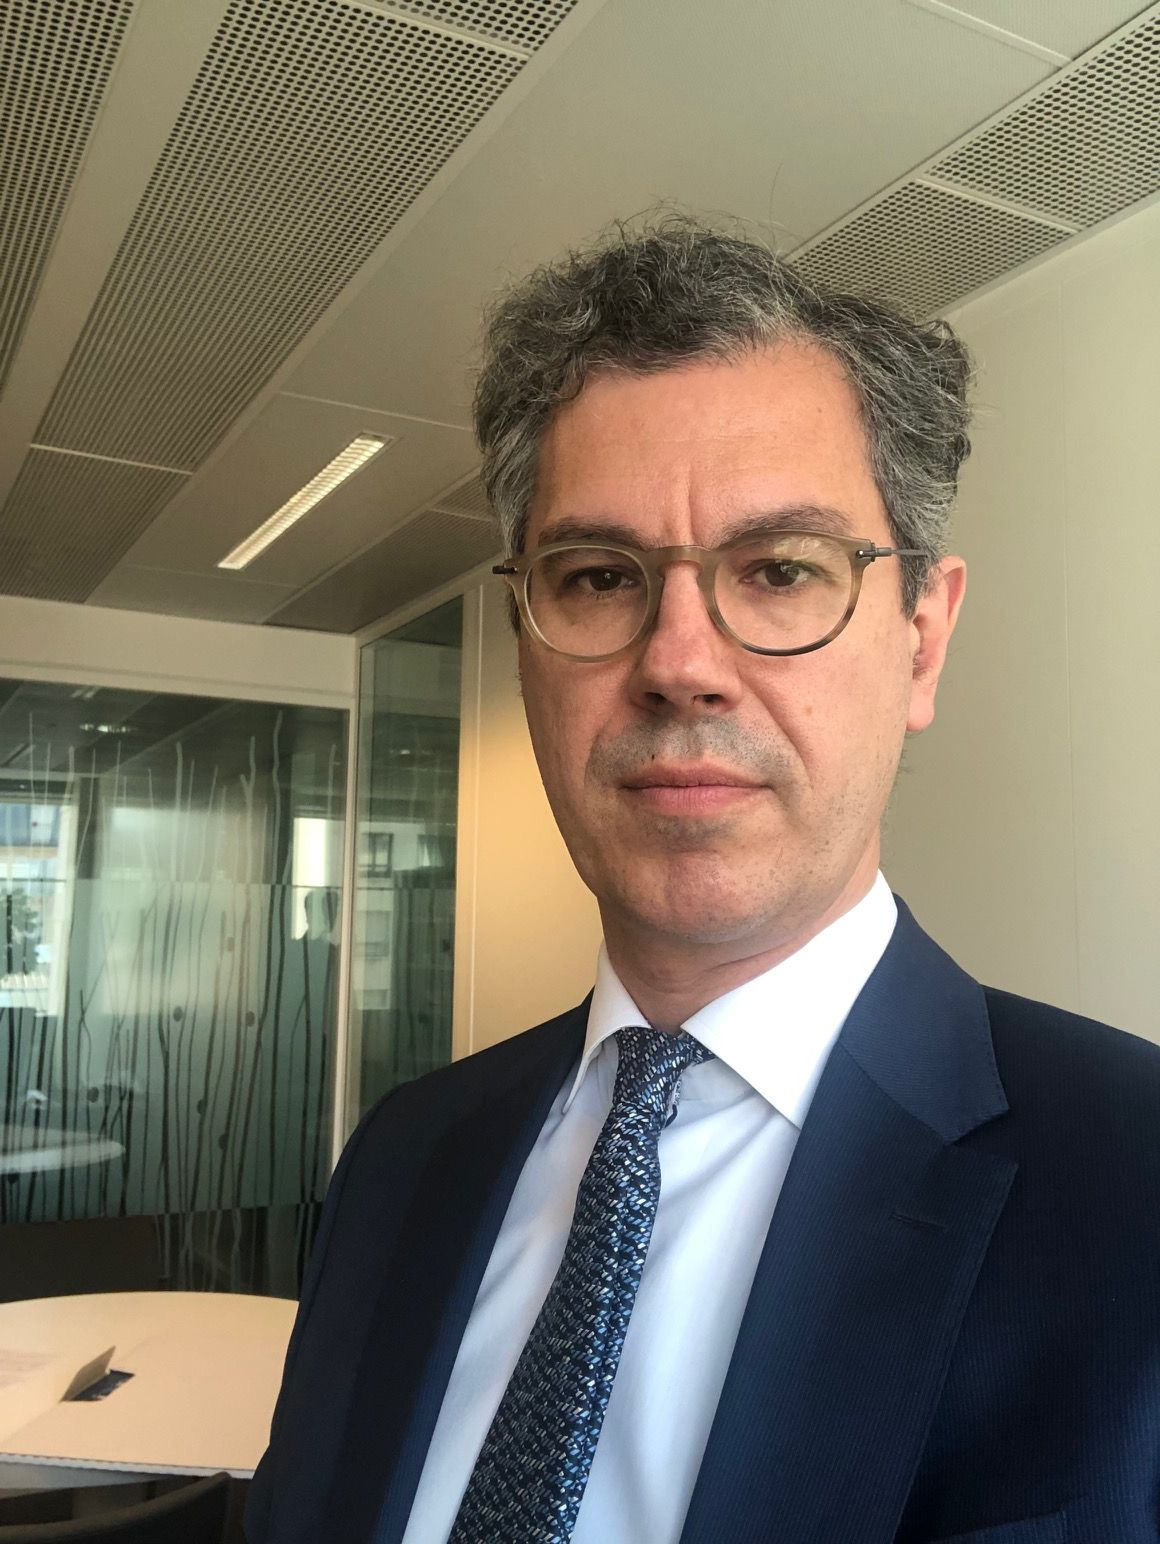 Philippe Desfontaine, Head of Accounting, Controlling, Tax and Purchasing Information Systems, EDF Group